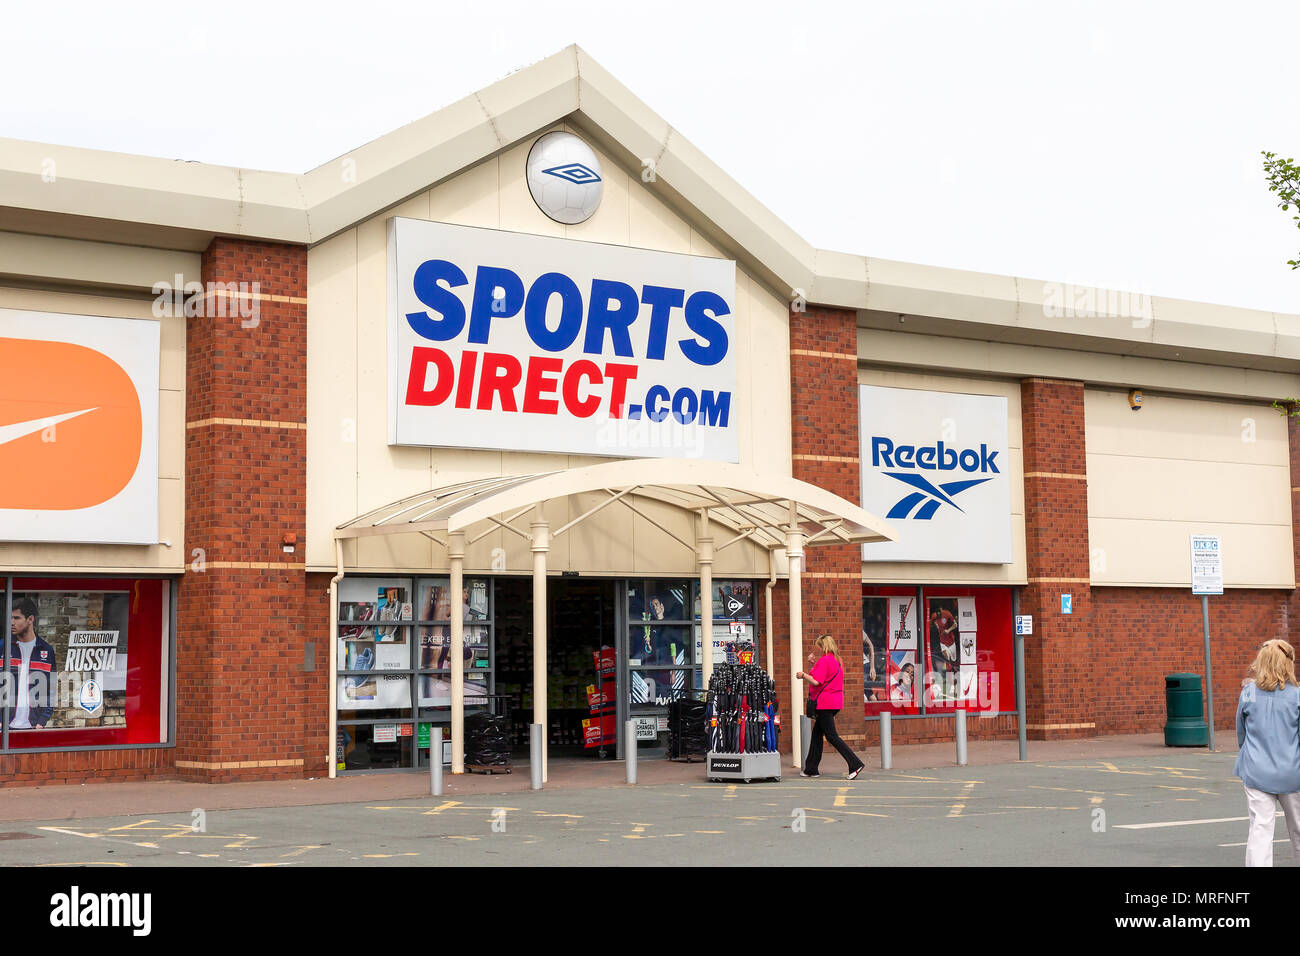 18 May 2018 - Sports Direct store on The Riverside retail park in Warrington, town centre, Cheshire, England, UK - Stock Image